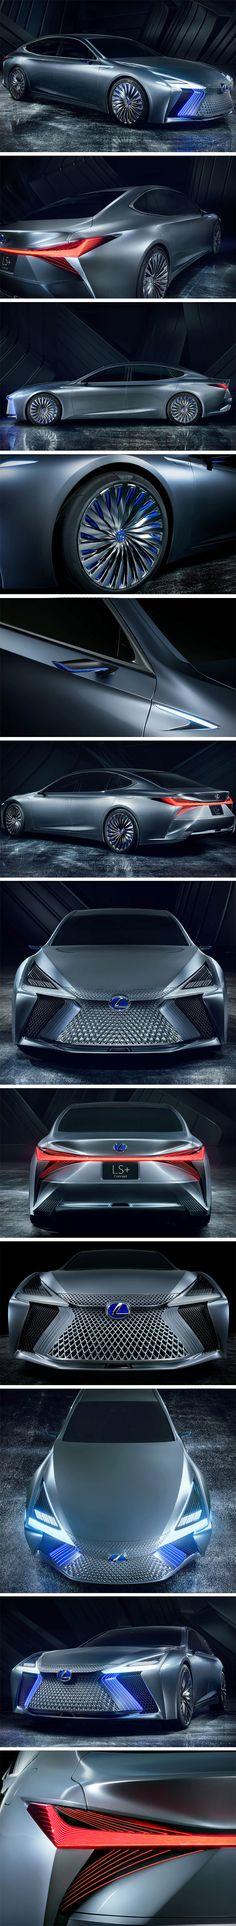 The LS+ Concept embodies all that Lexus envision for the future of autonomous driving. With its edgy, clean sedan appearance, the LS+ Concept is also packed to the brim with state-of-the-art tech to ensure the passengers can have a safe, smooth and fun drive at all times.